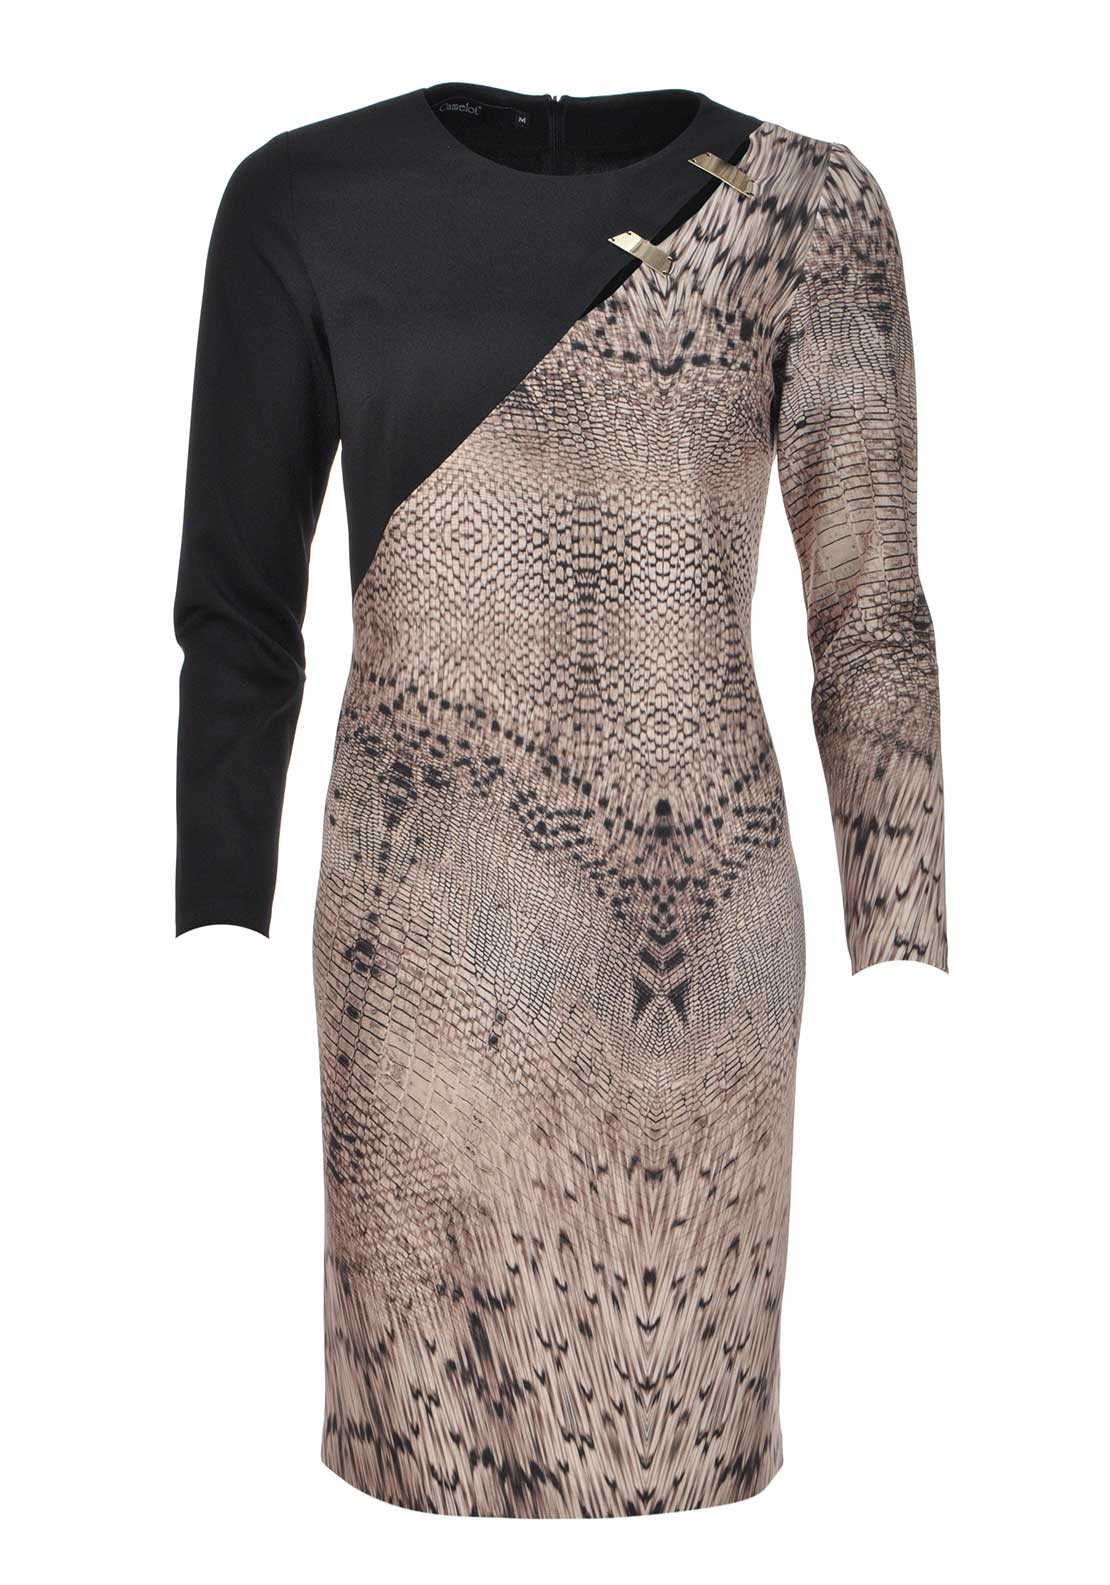 Camelot Reptile Print Long Sleeve Scuba Dress, Beige Multi